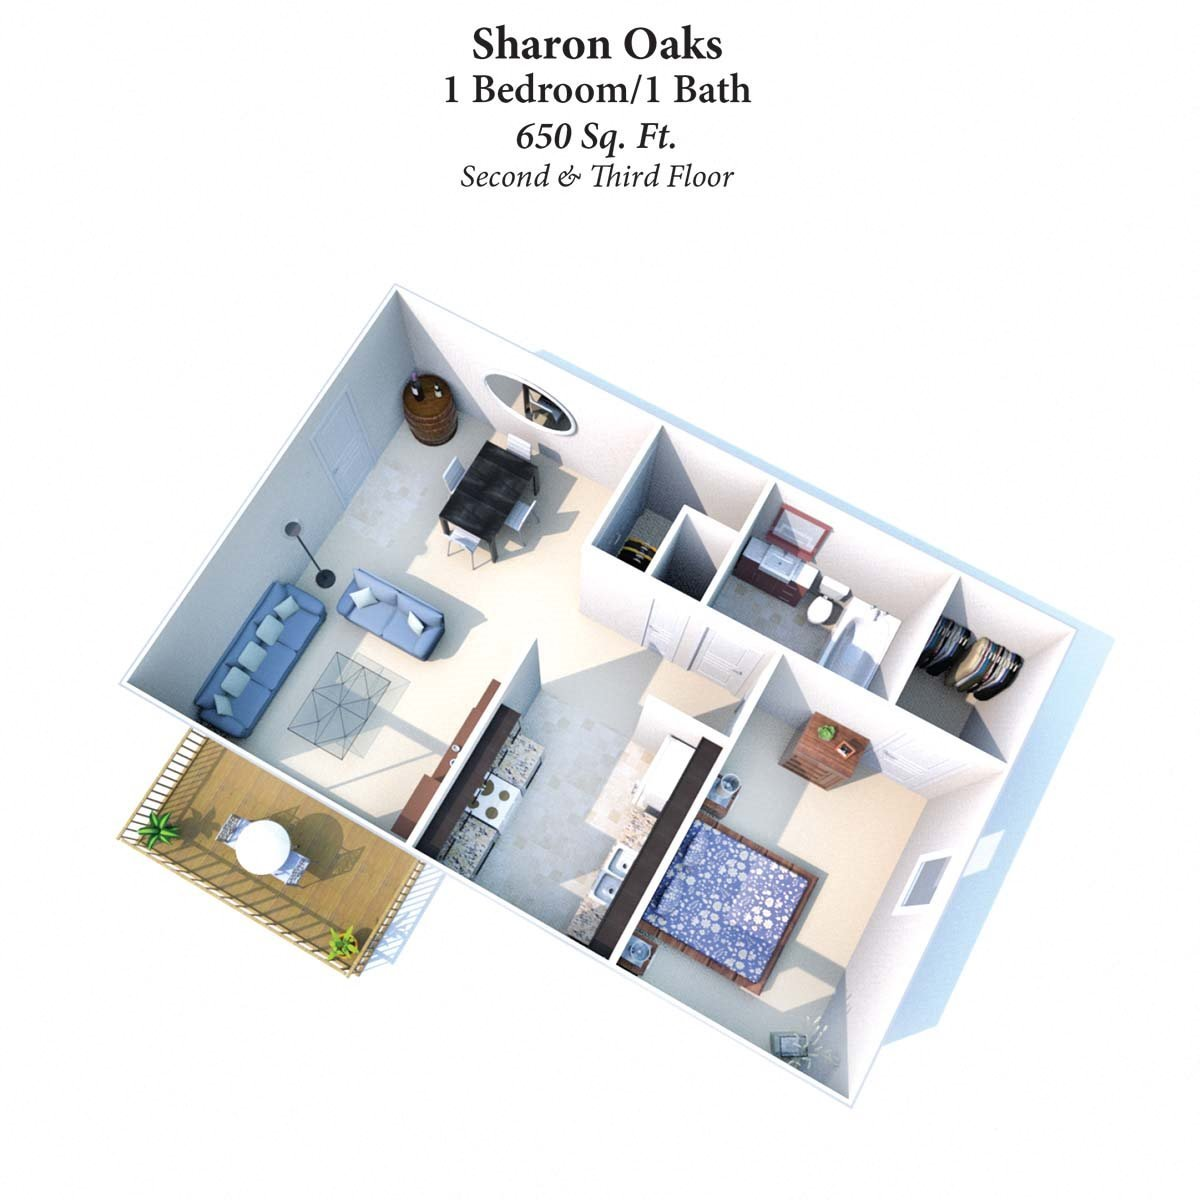 1B/1B Sharon Oaks 650SqFt Floor Plan 2